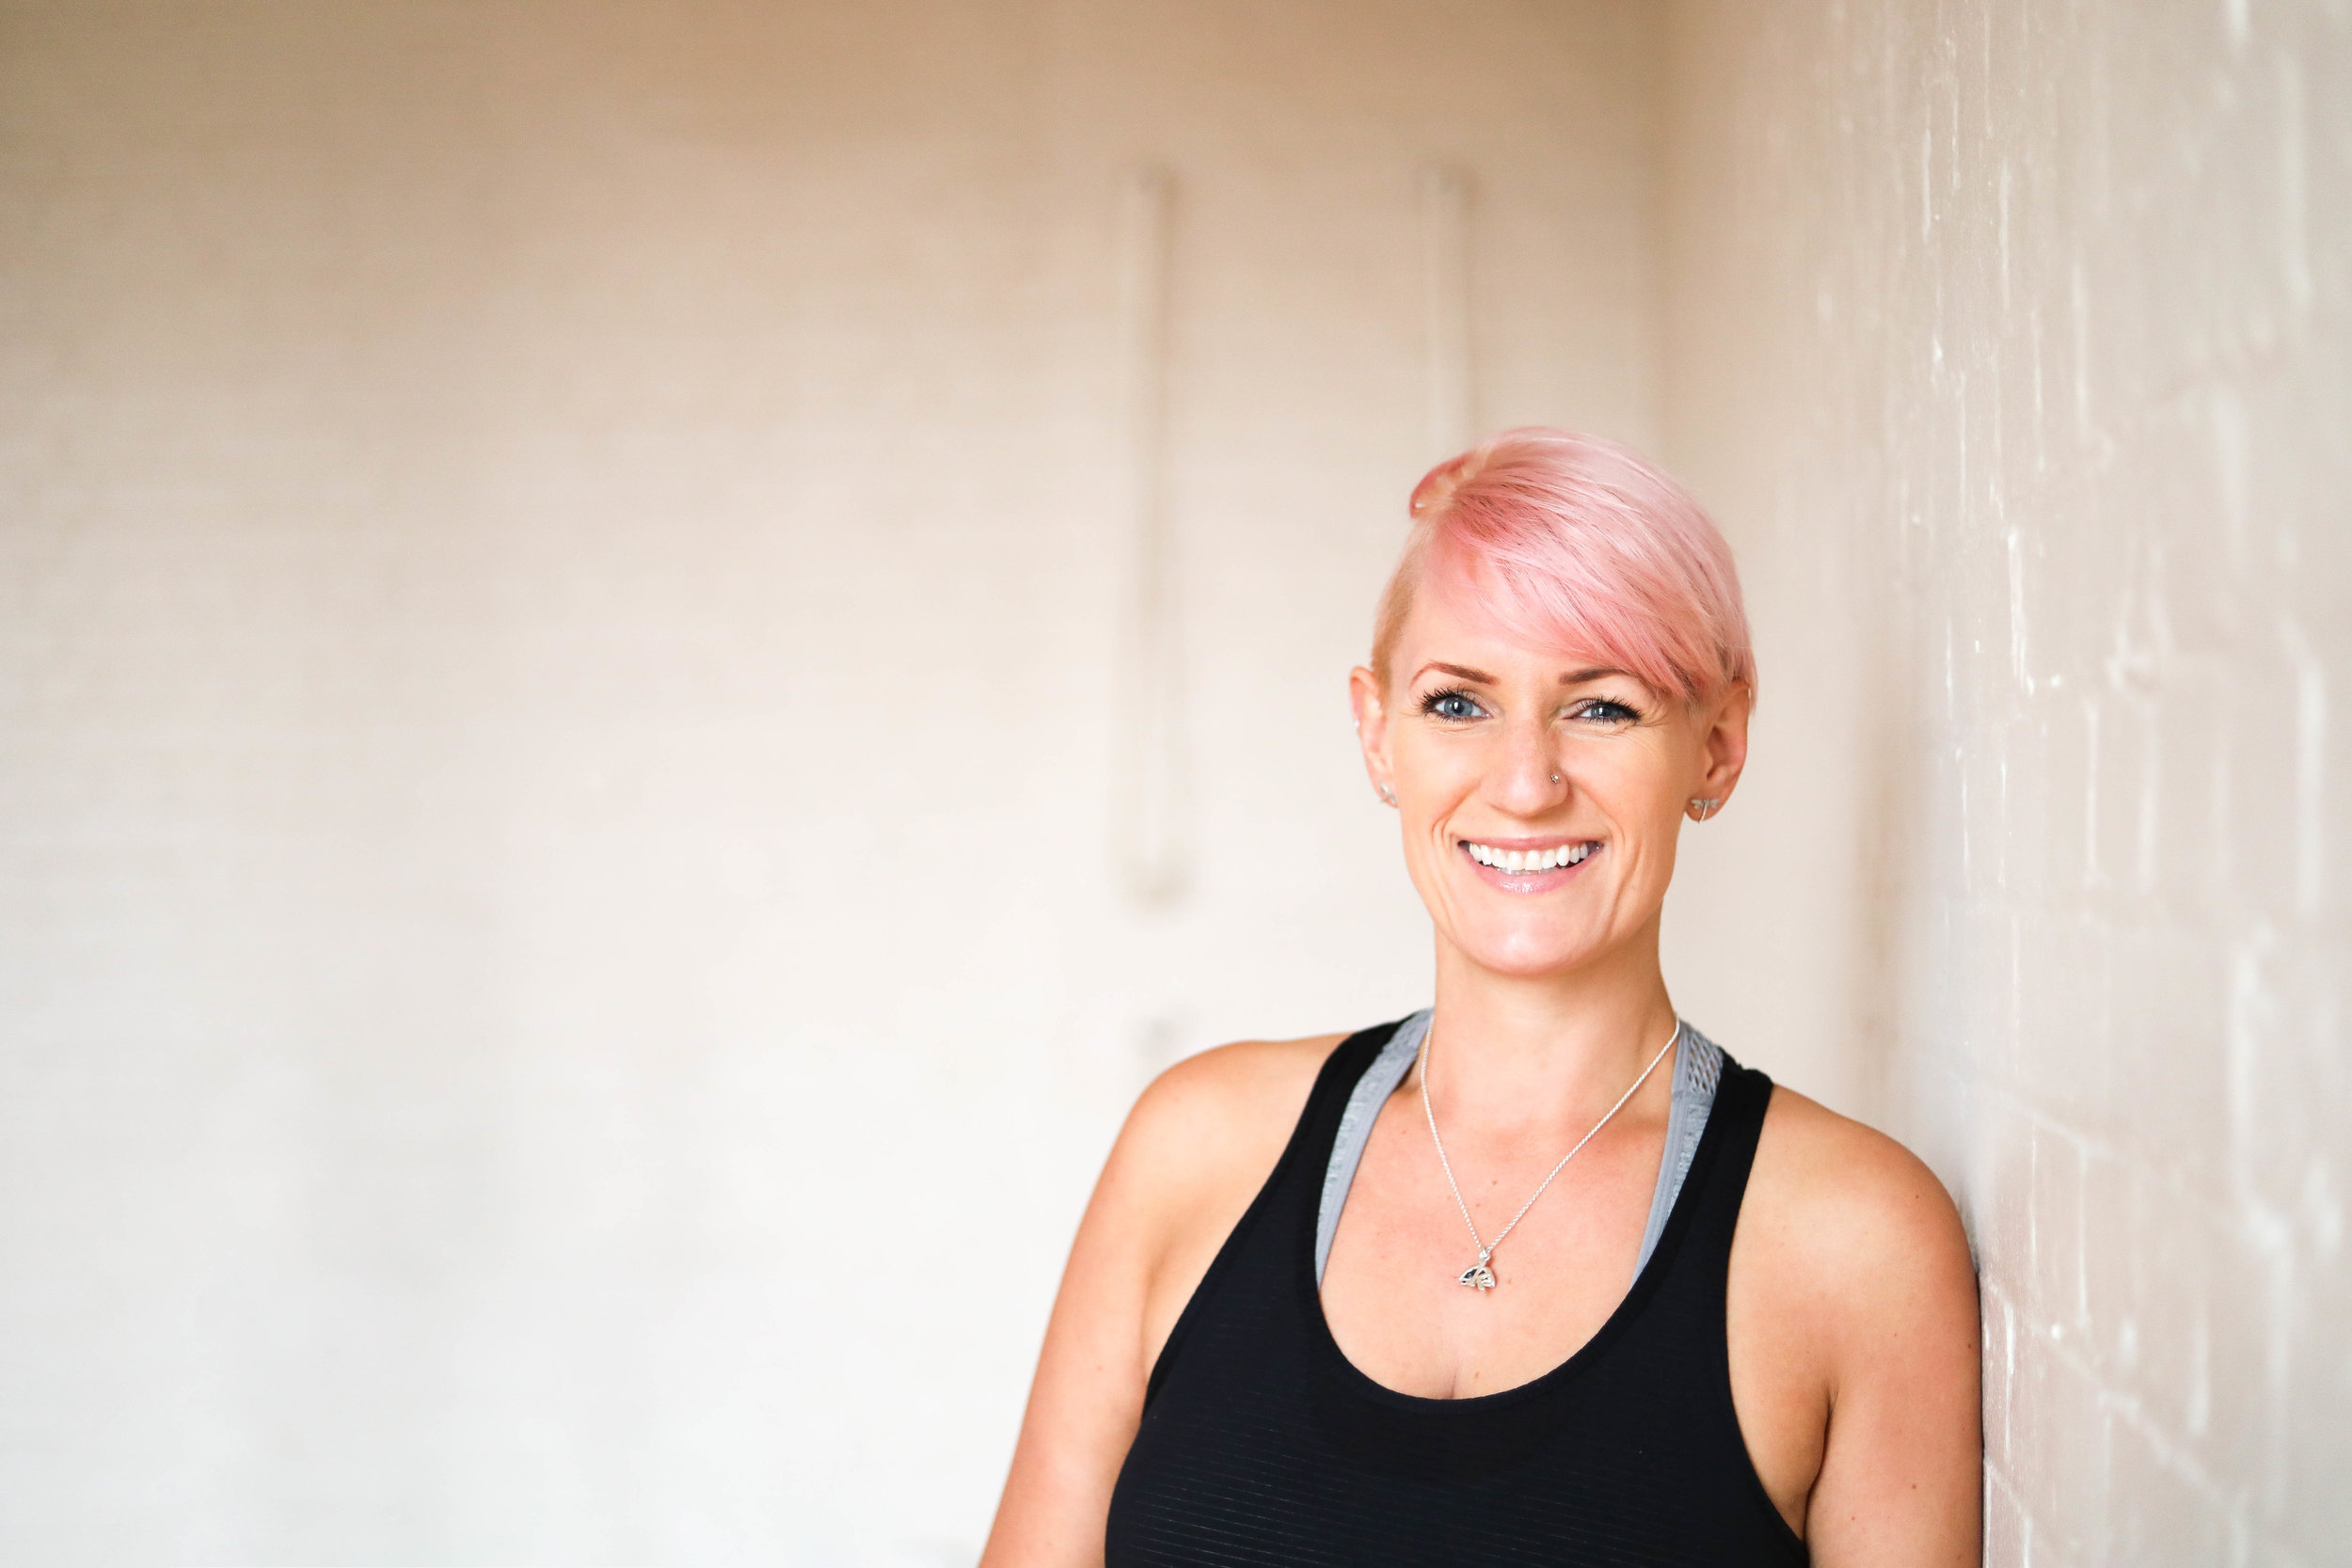 Yoga instructor - Having spent months in India completing her training in the traditional ways of yoga and how to teach it, Kate needed professional imagery for her new employer's website and her own.  Learn more...